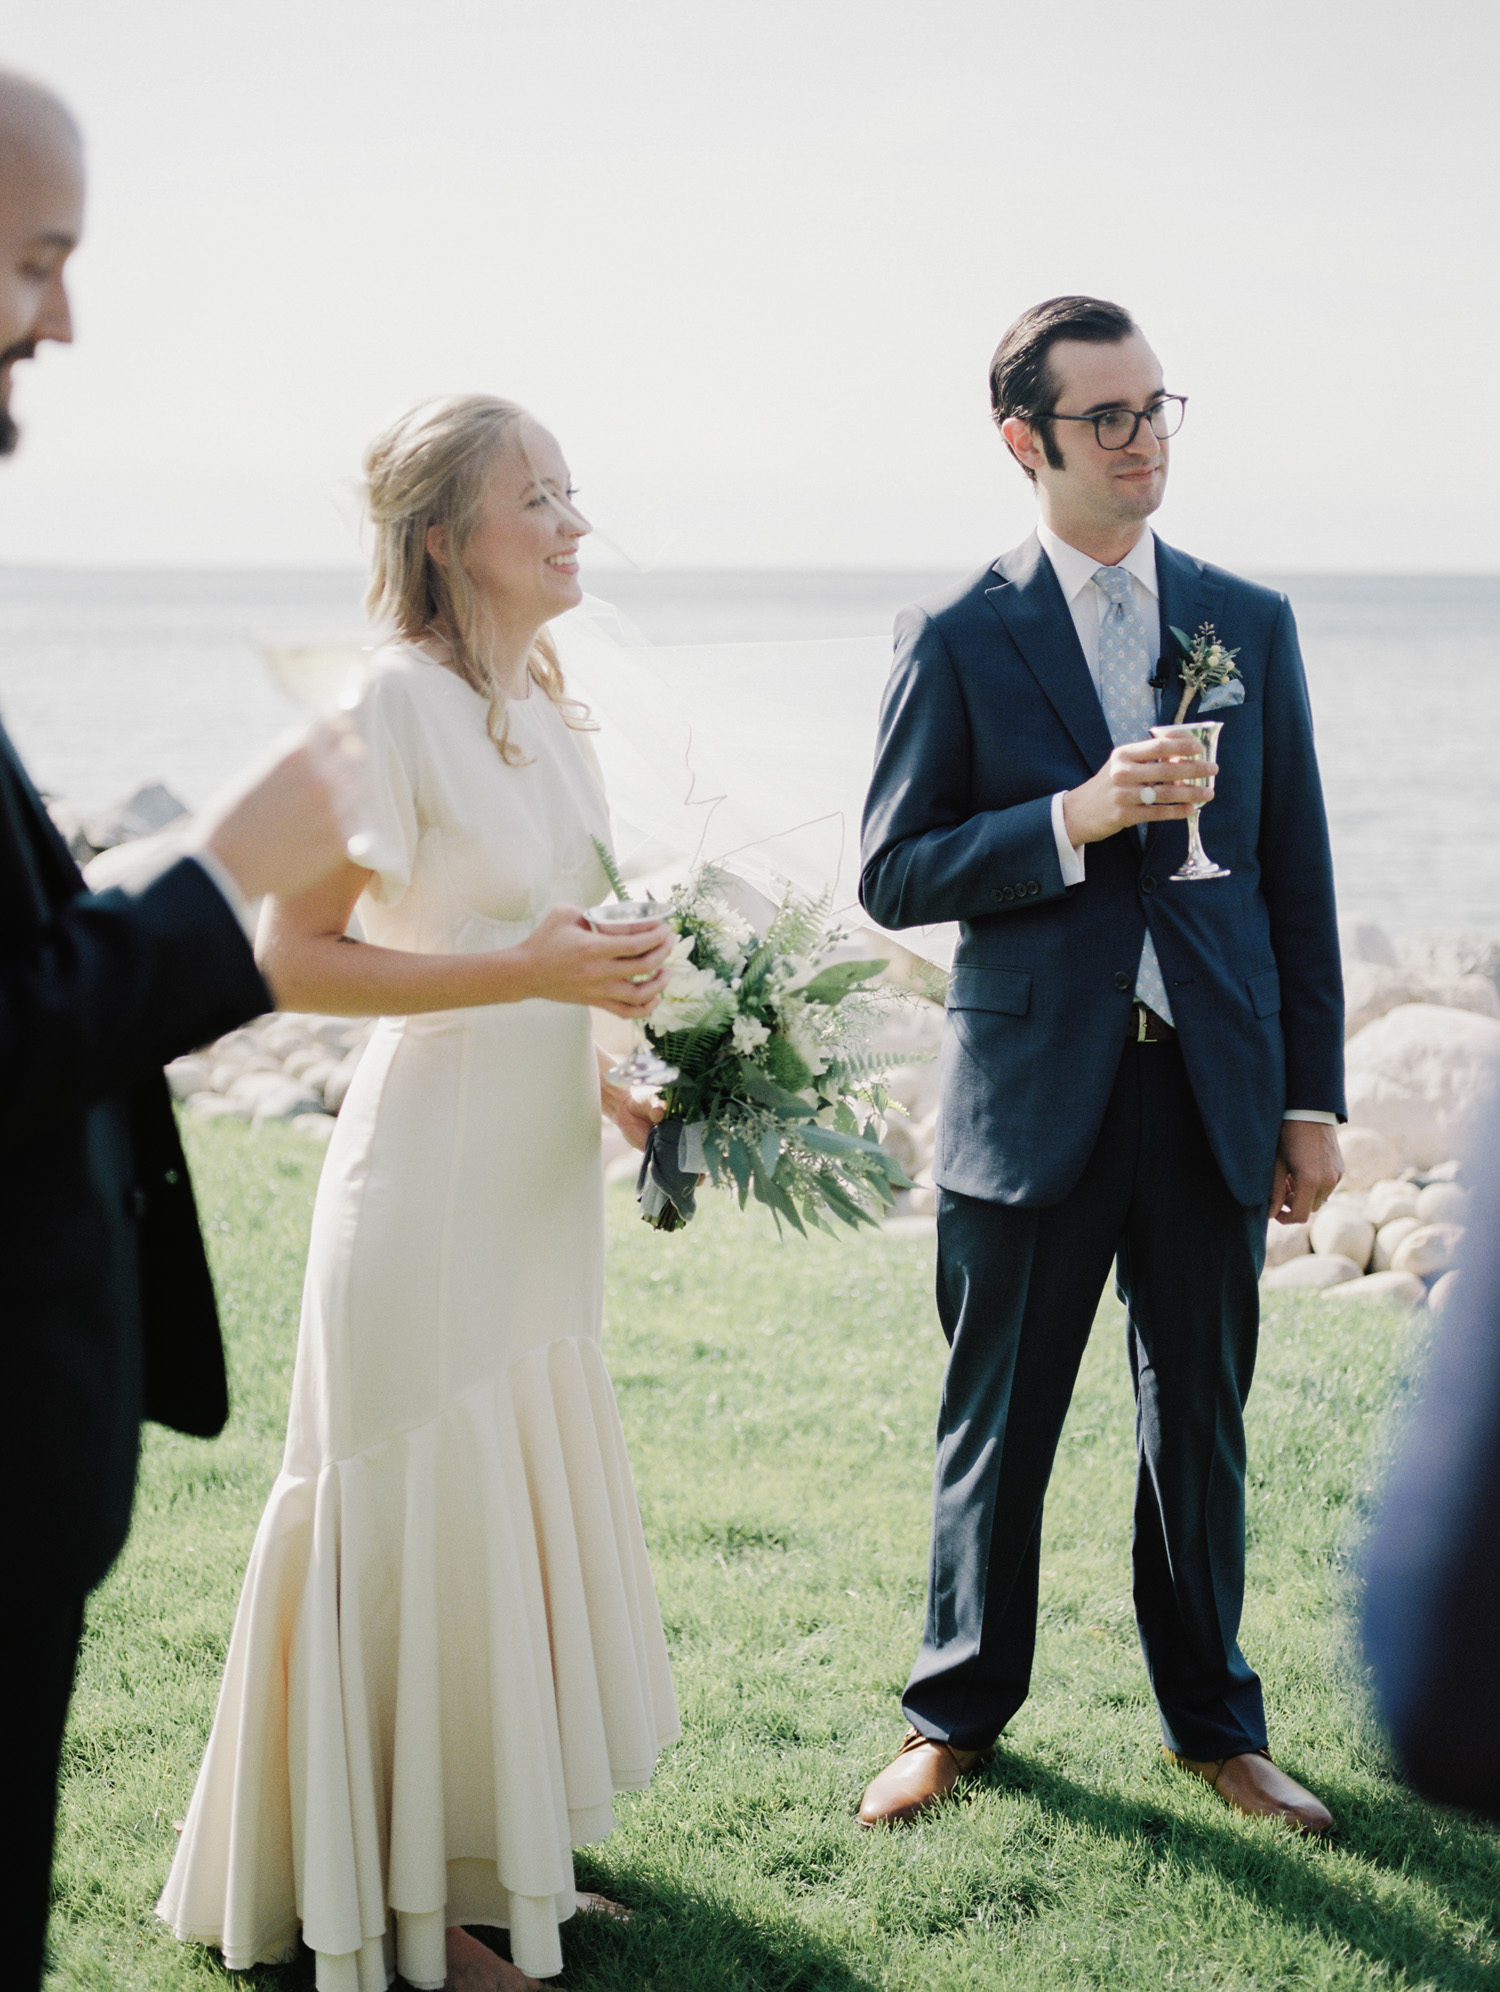 A newlywed couple toasts with silver goblets after their wedding ceremony on lake Michigan